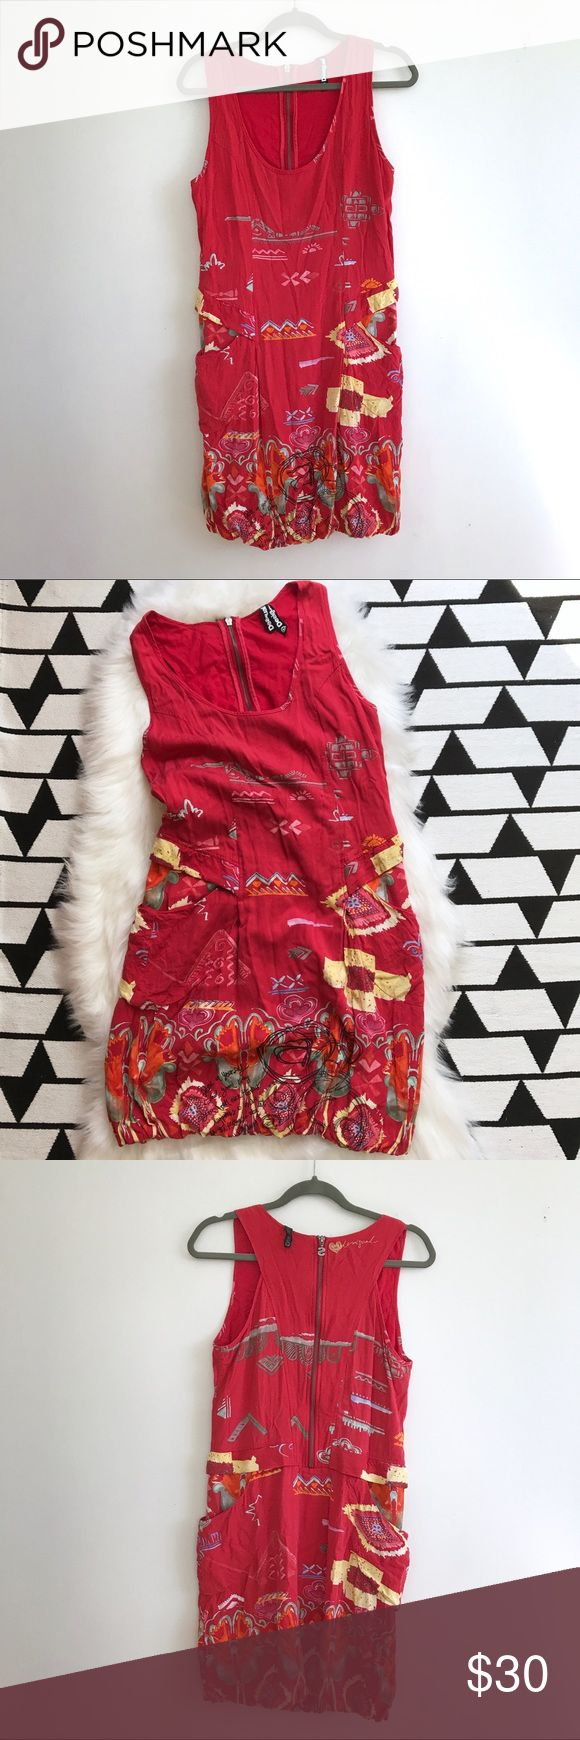 Desigual Red Bubble Scoopneck Dress EU 38 is a US Small or 6. Excellent preowned condition, no issues. front pockets. Tulip/bubble skirt. Abstract floral pattern. exposed back zipper. Desigual Dresses